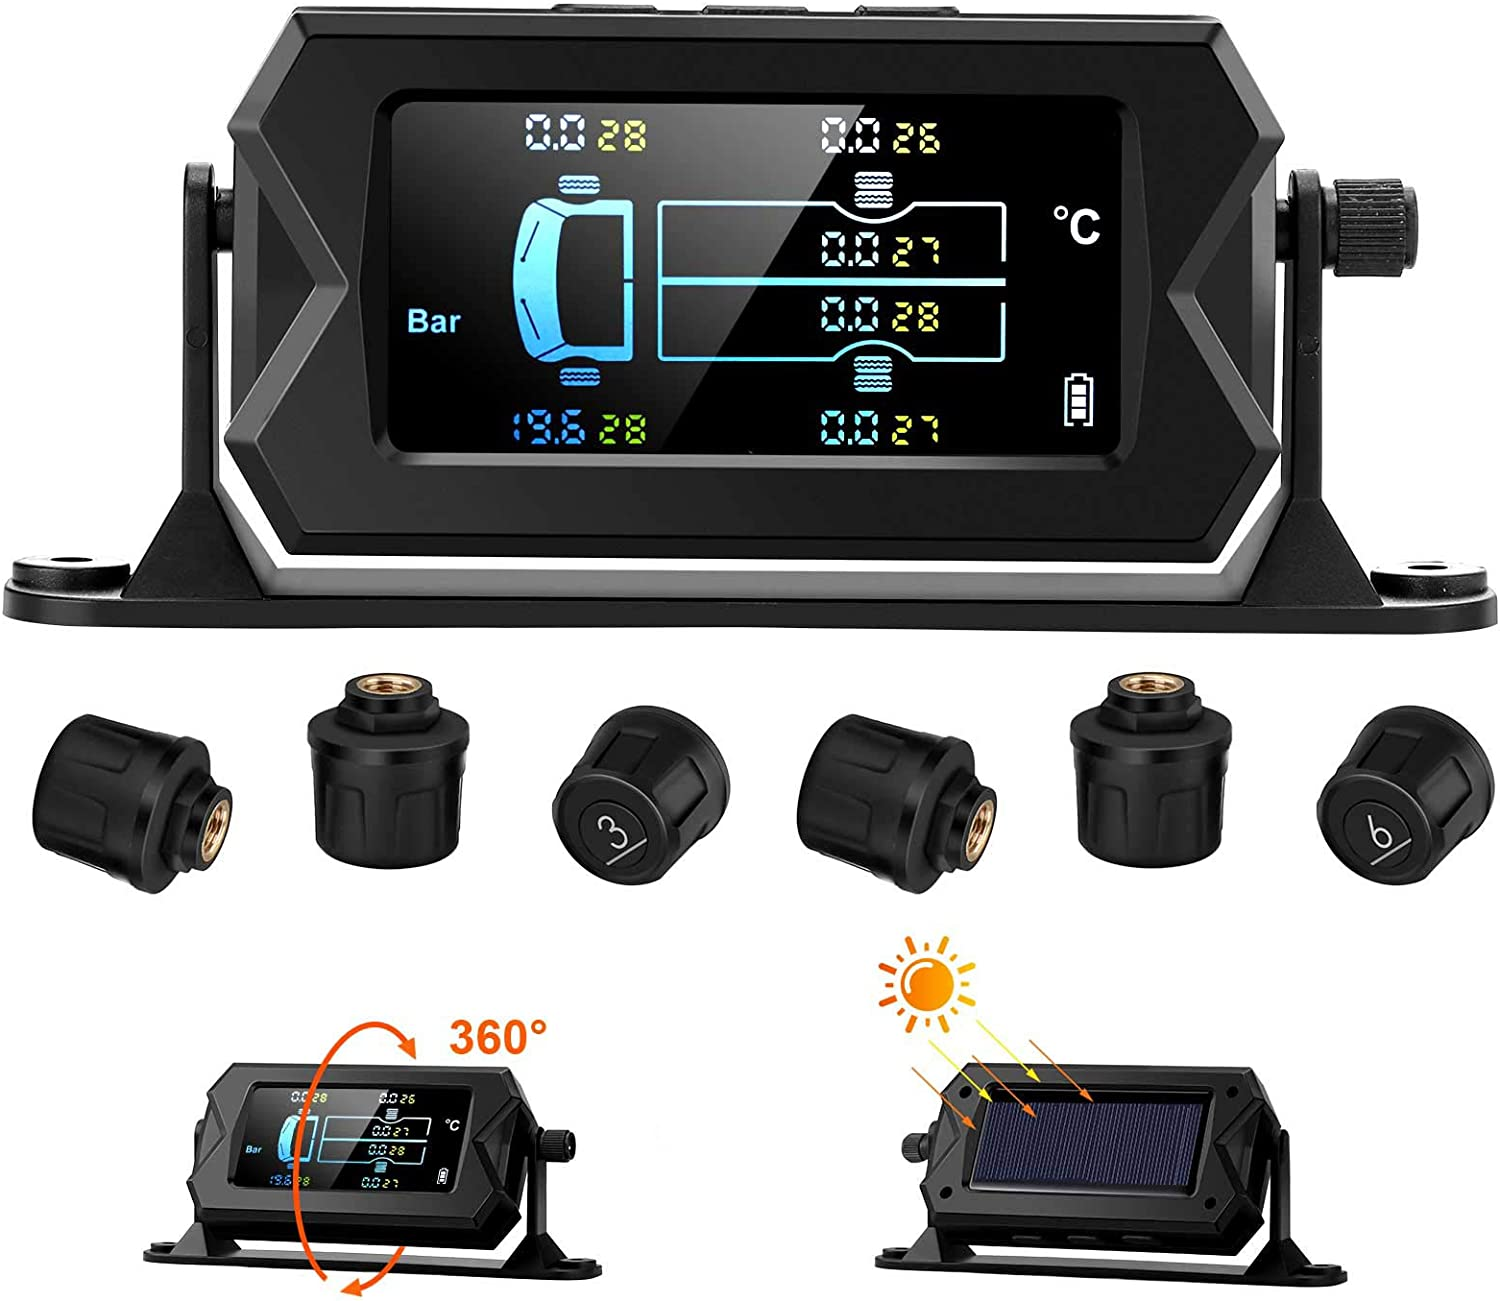 Blueskysea New products world's highest Be super welcome quality popular TS610 Tire Pressure Monitoring for Solar TPMS System